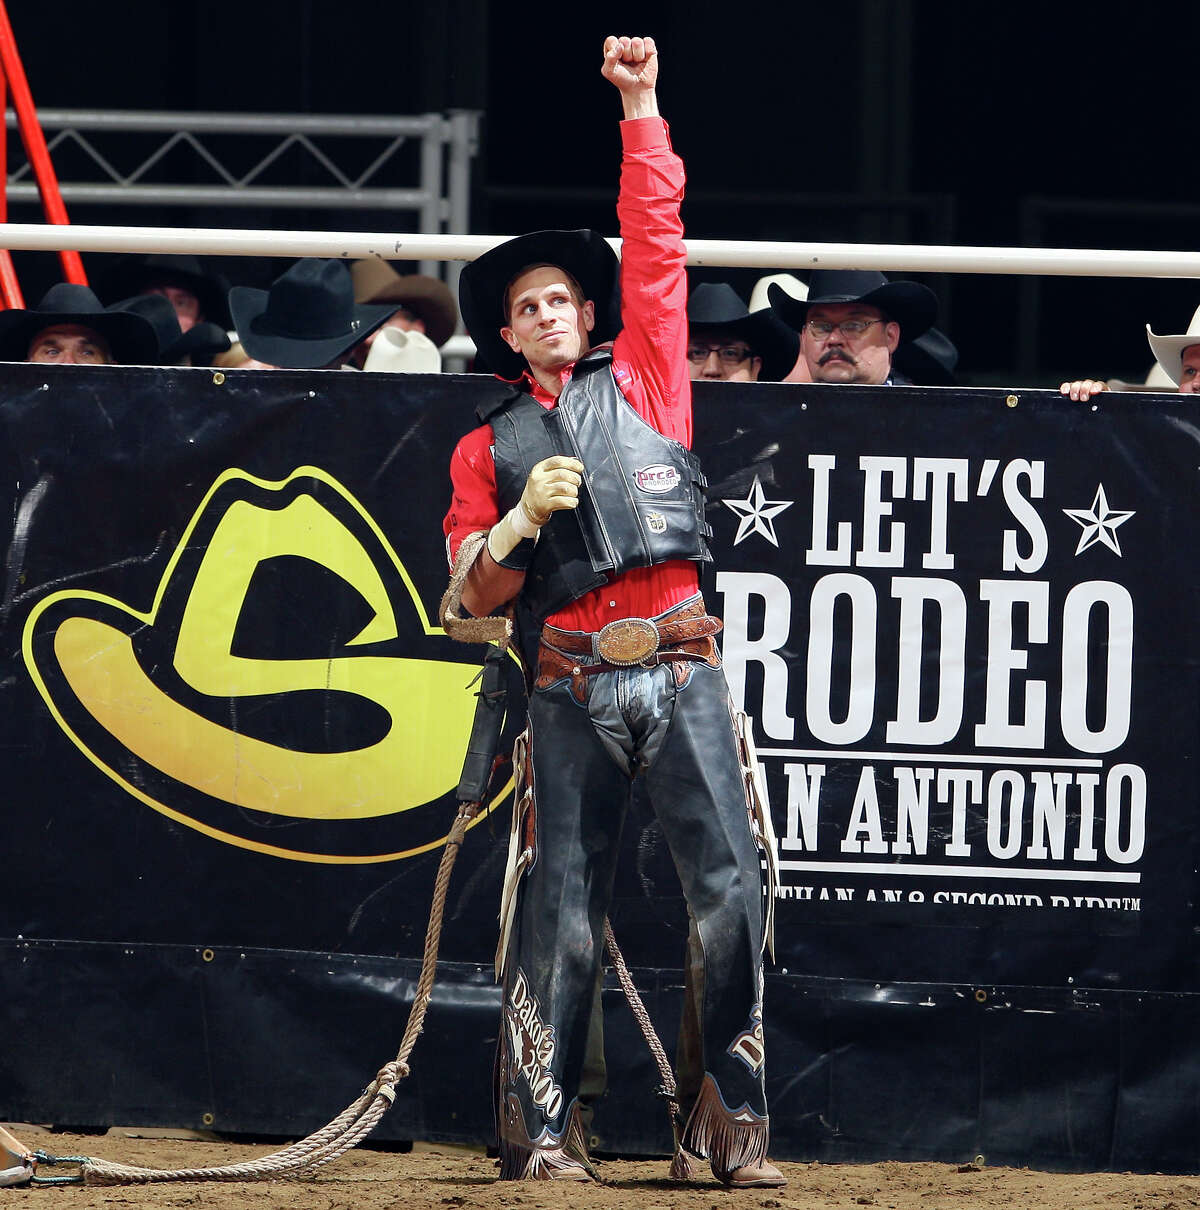 Ardie Maier, from Timber Lake, SD, celebrates after his bull ride Saturday Feb. 19, 2011 during the San Antonio Stock Show & Rodeo at the AT&T Center. Maier scored a 92 on the ride and won the event.